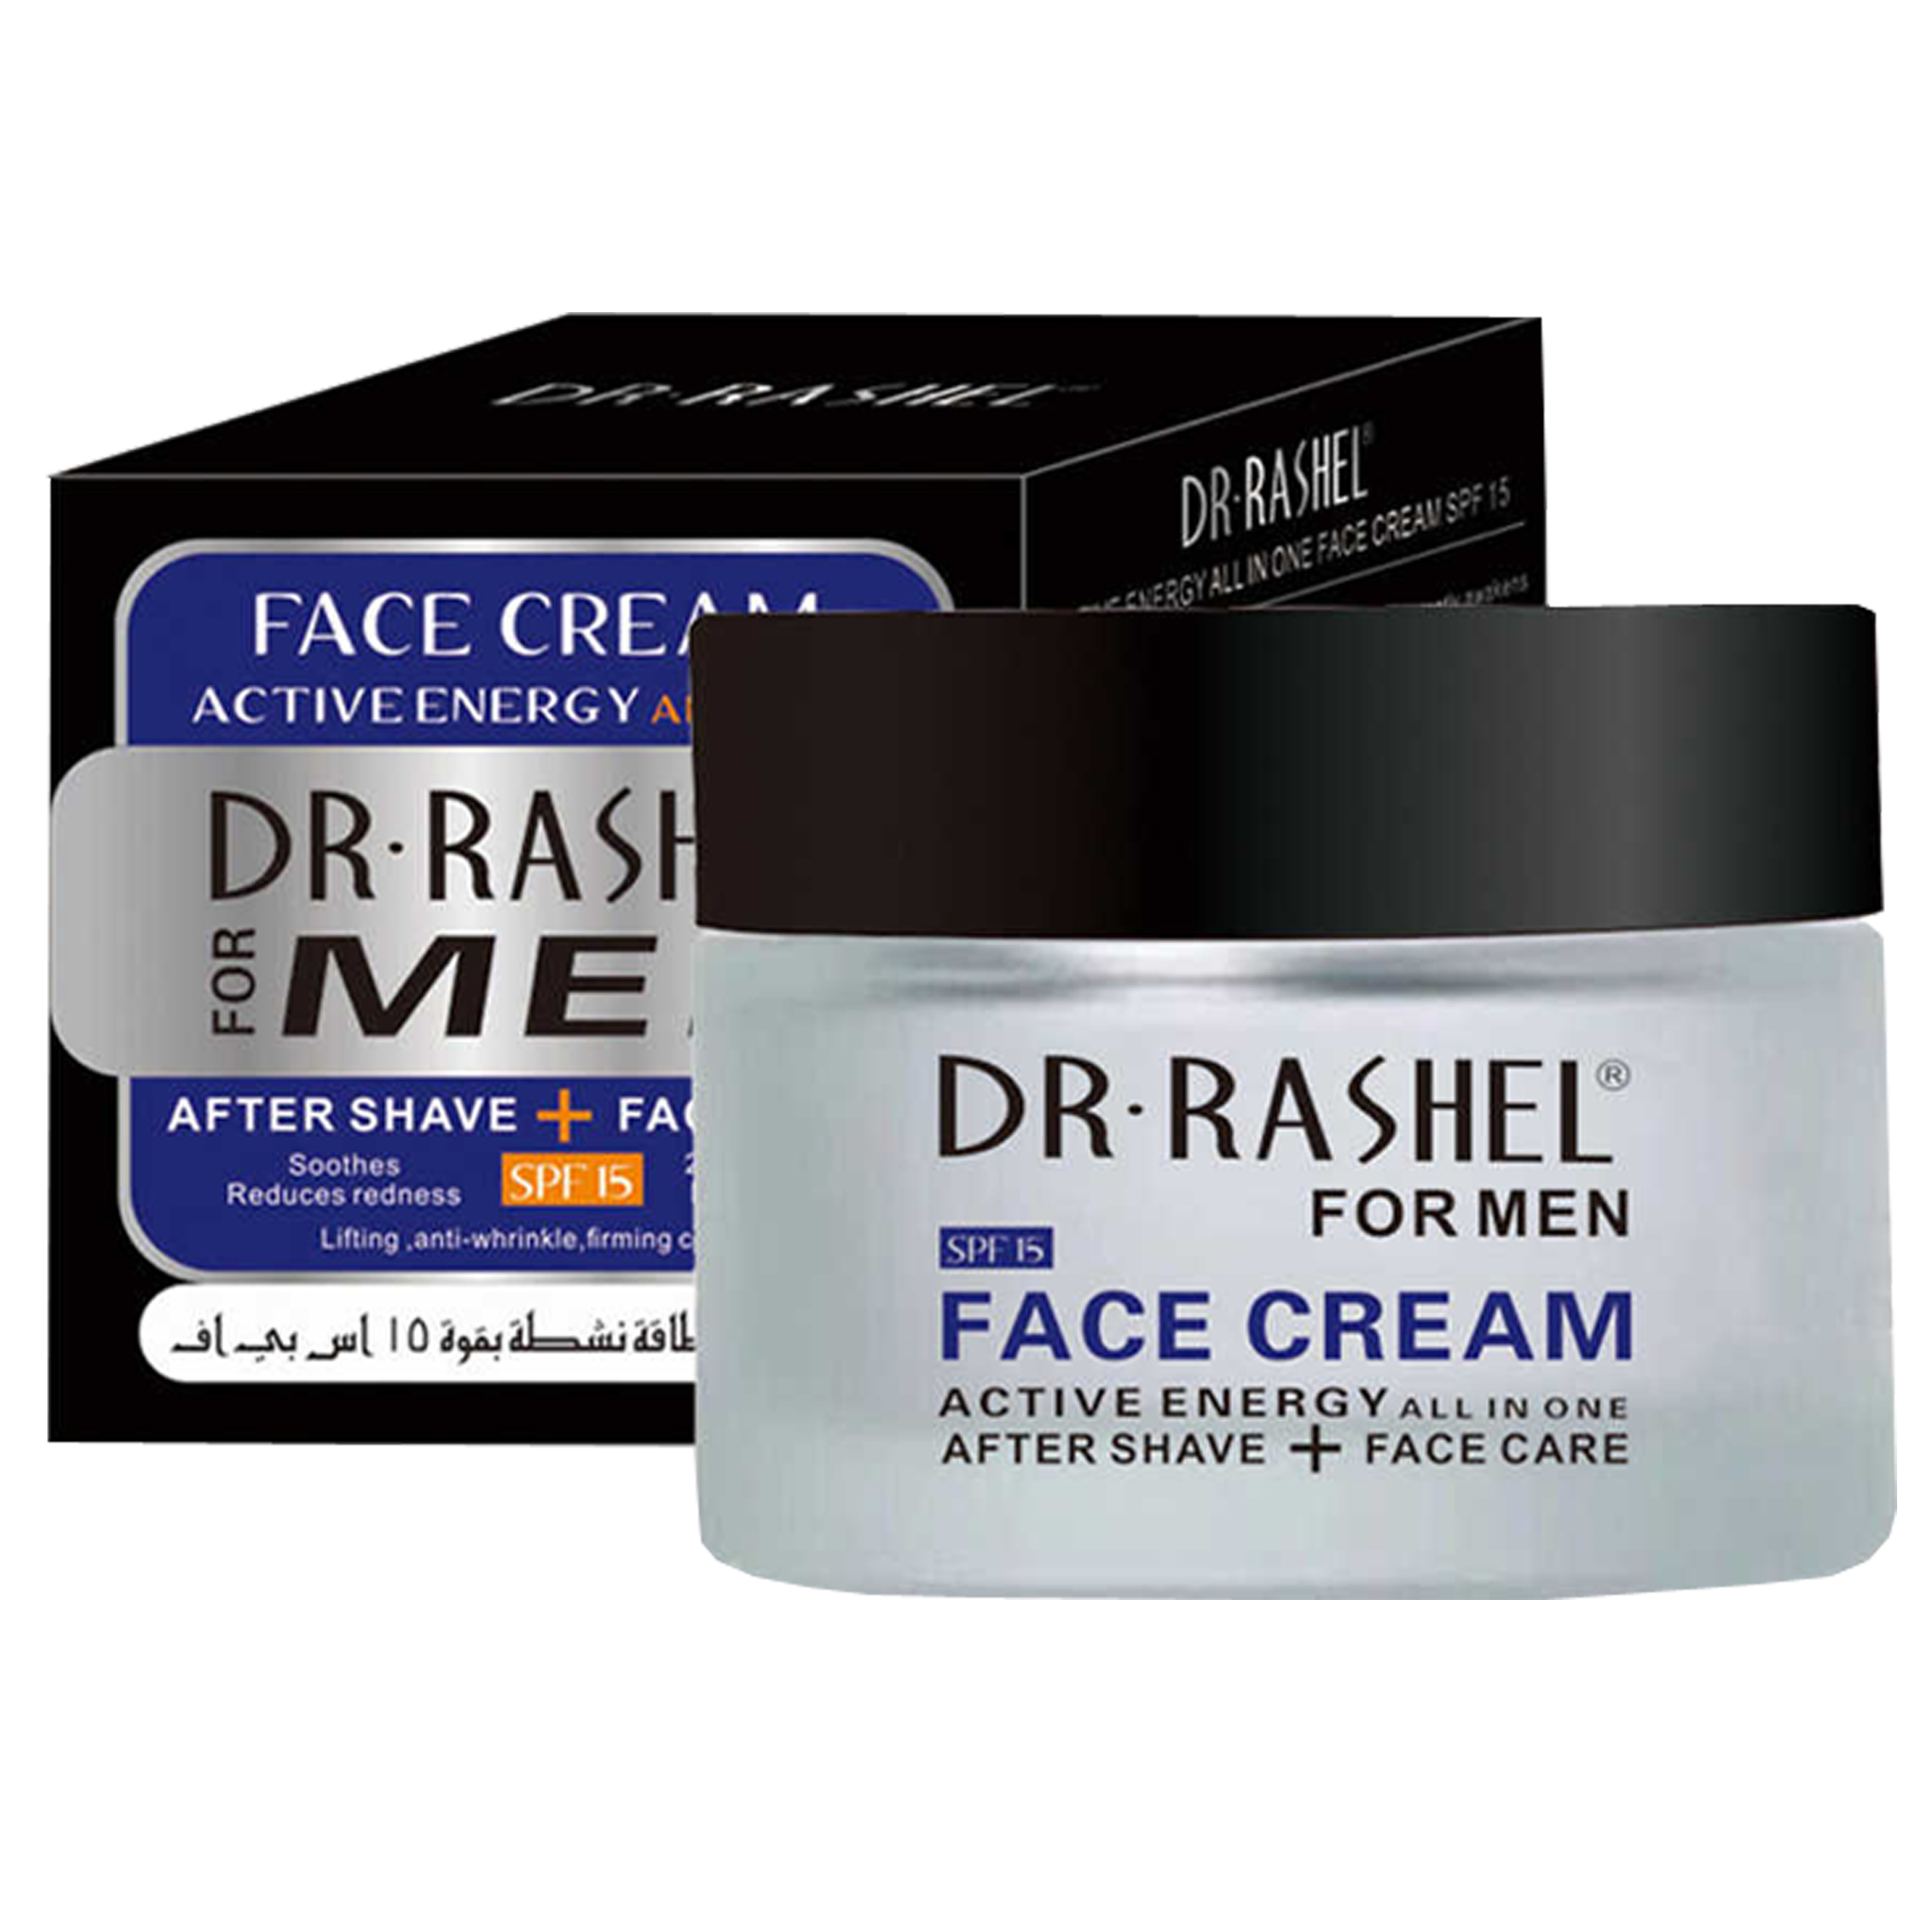 Dr Rashel Men Aftershave & Face Cream - Greatest deals